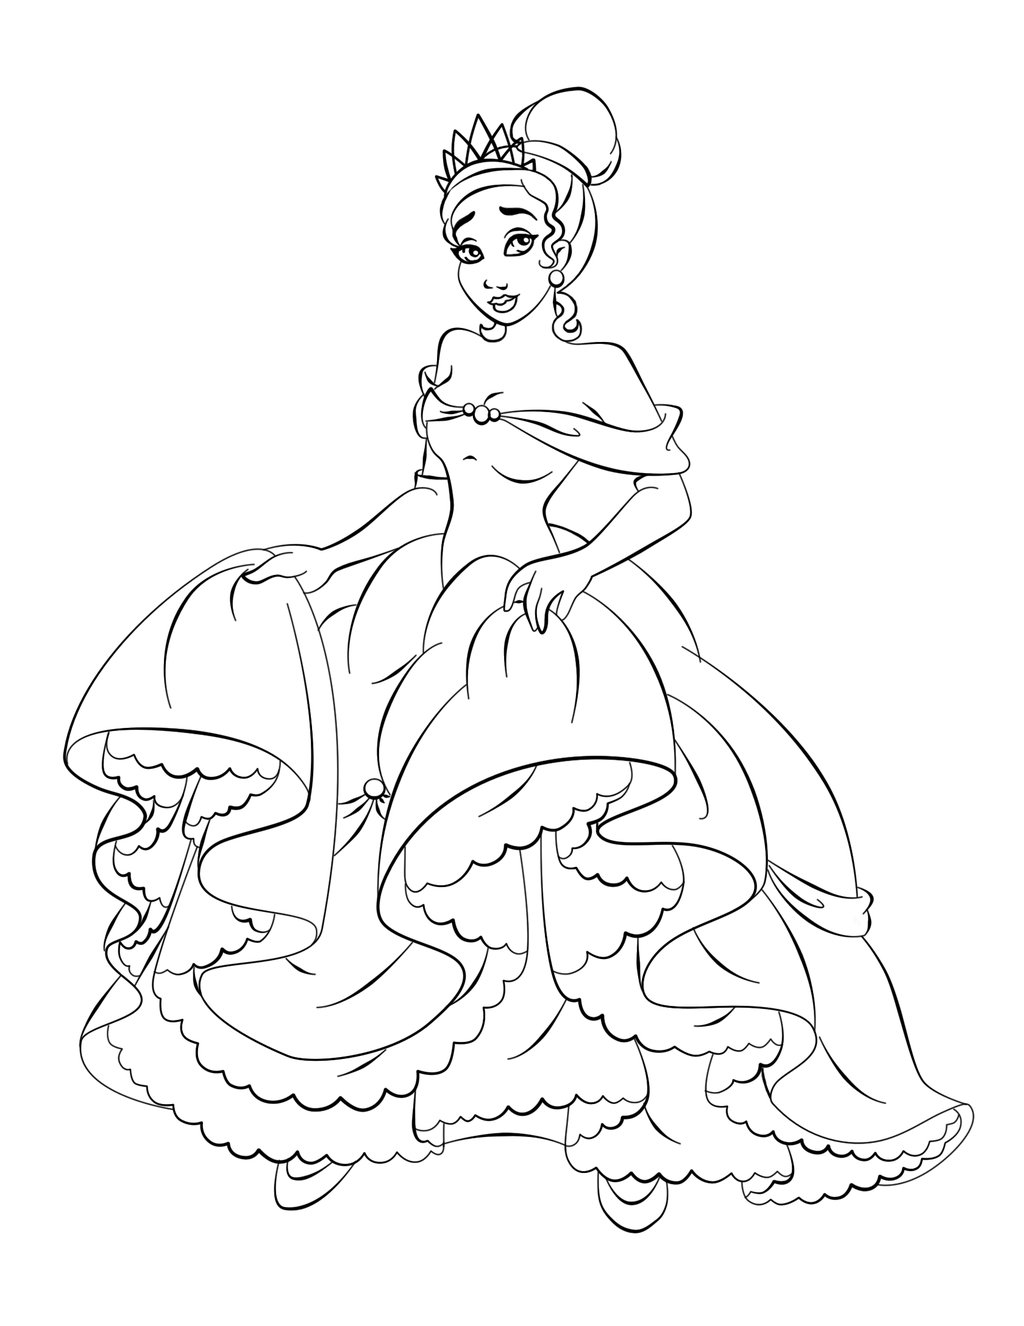 Disney Princess Coloring Pages 12 Free Printable Coloring Pages